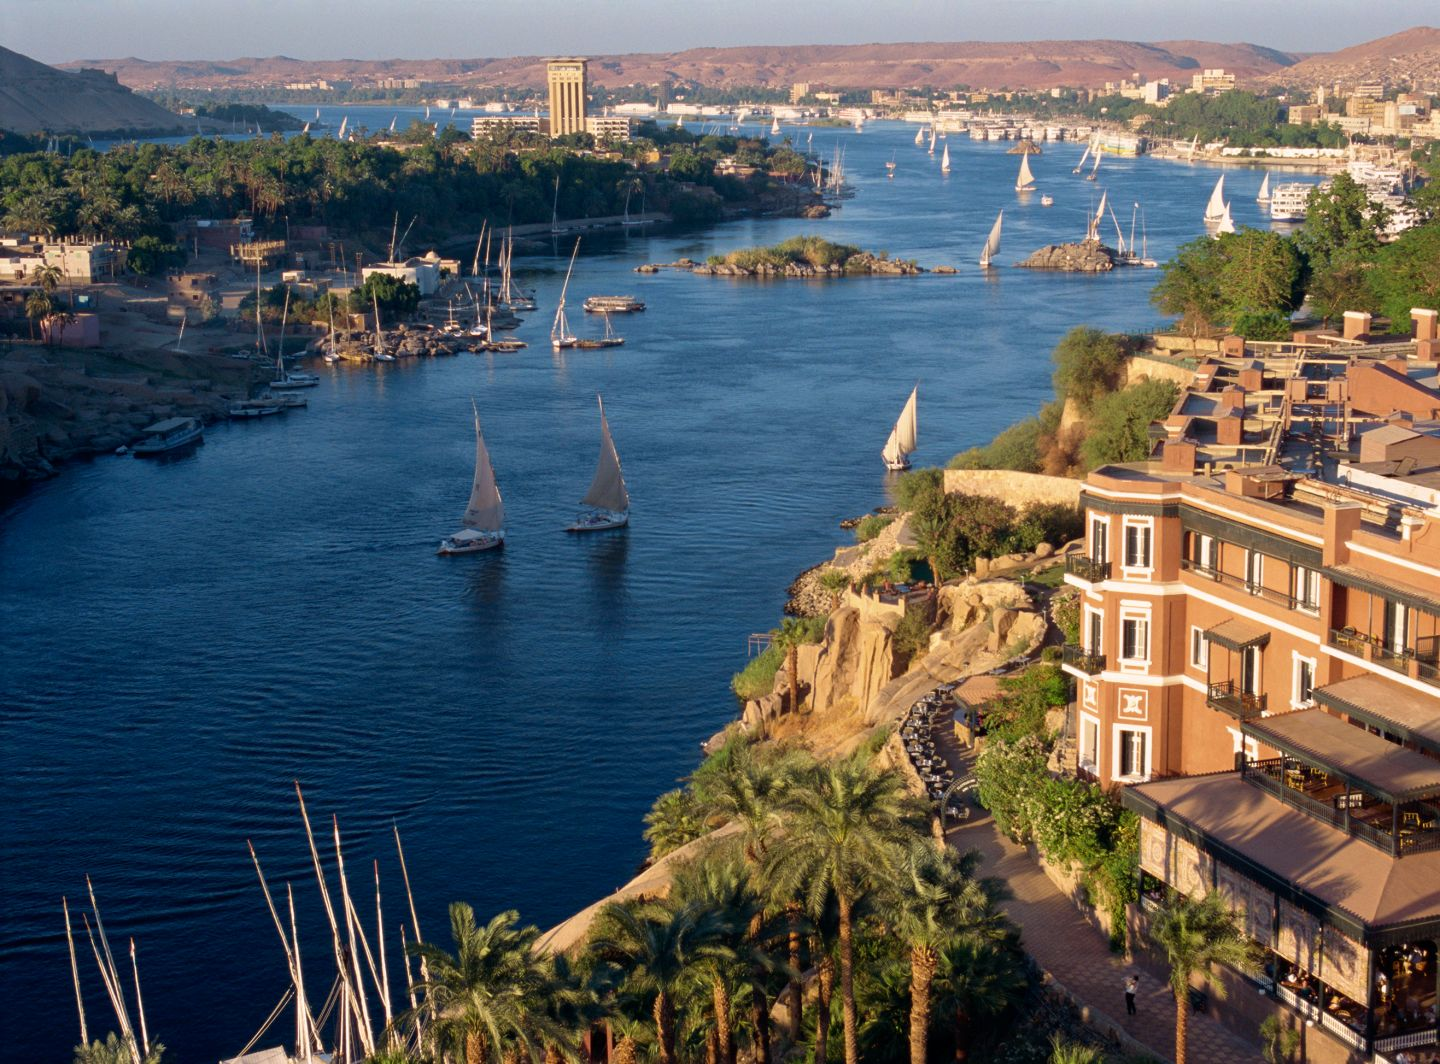 Nile_03_rexfeatures.jpg